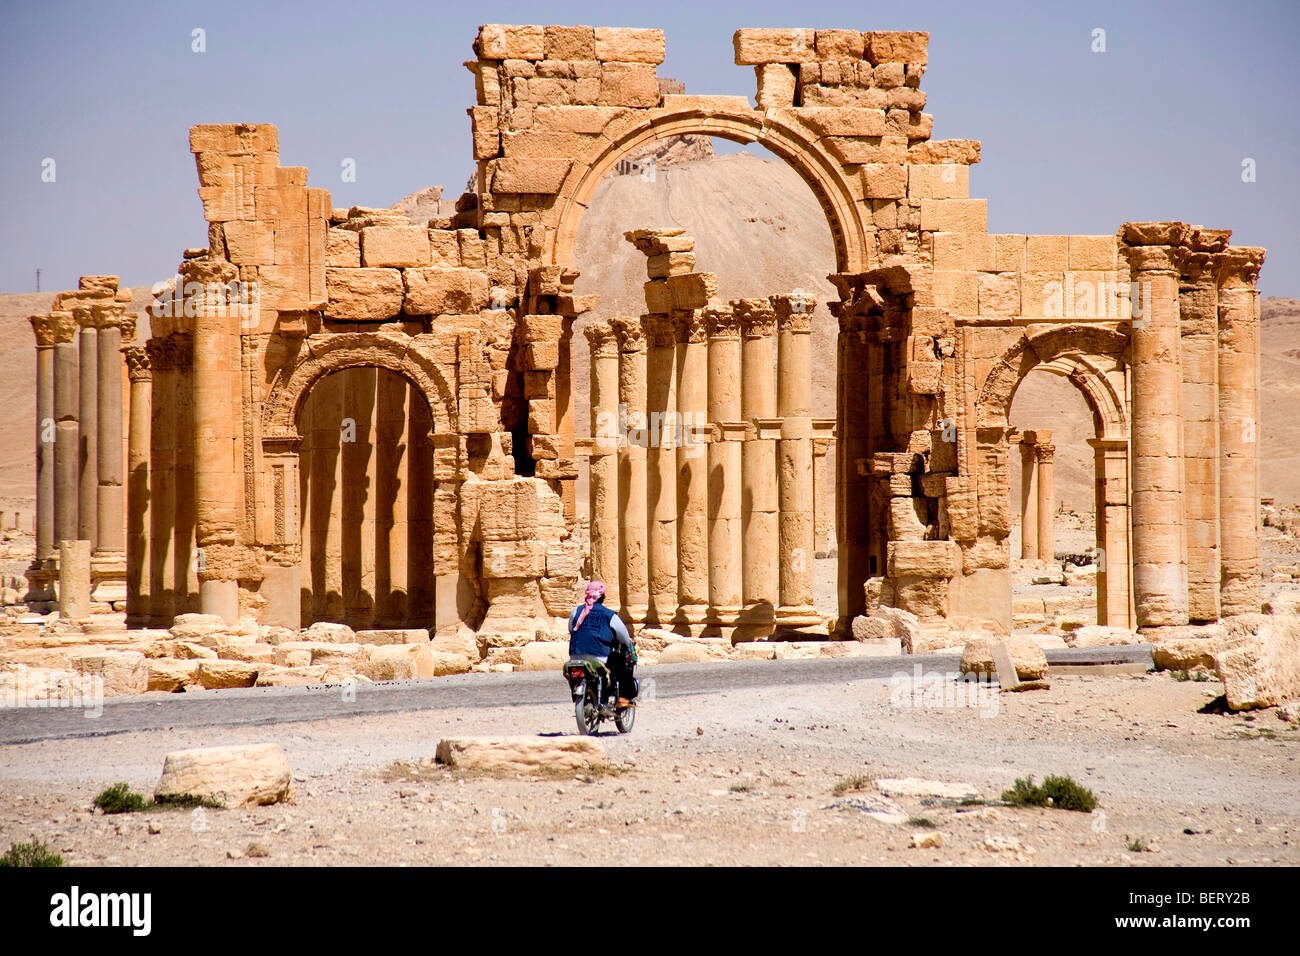 Motorcycle near roman ruins and archaeological site in Palmyra, Syria, Middle East, Asia - Stock Image